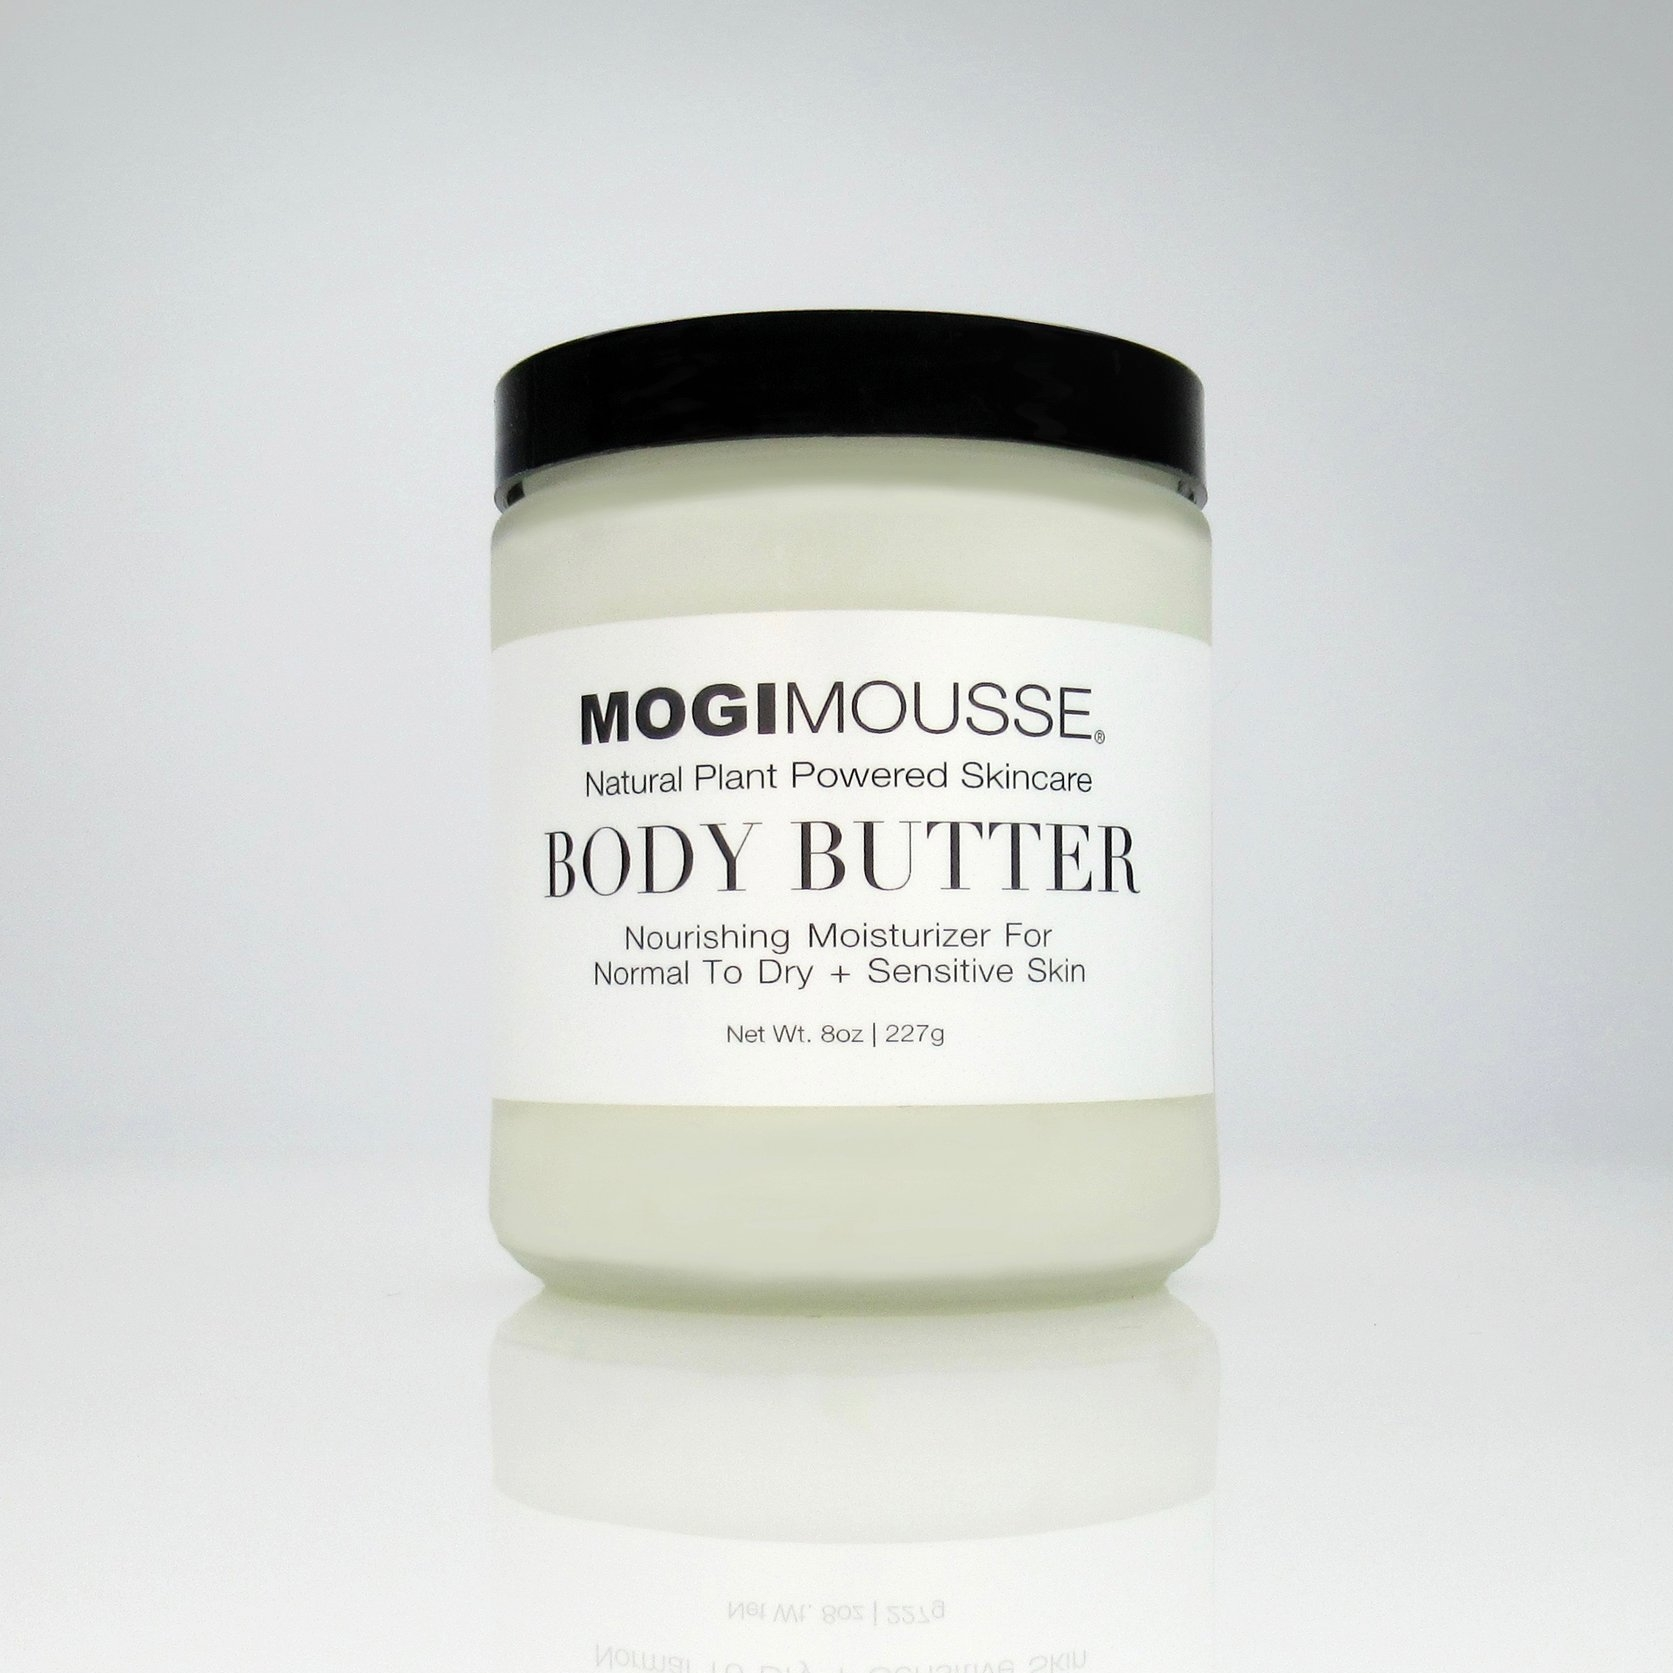 MOGI MOUSSE Body Butter